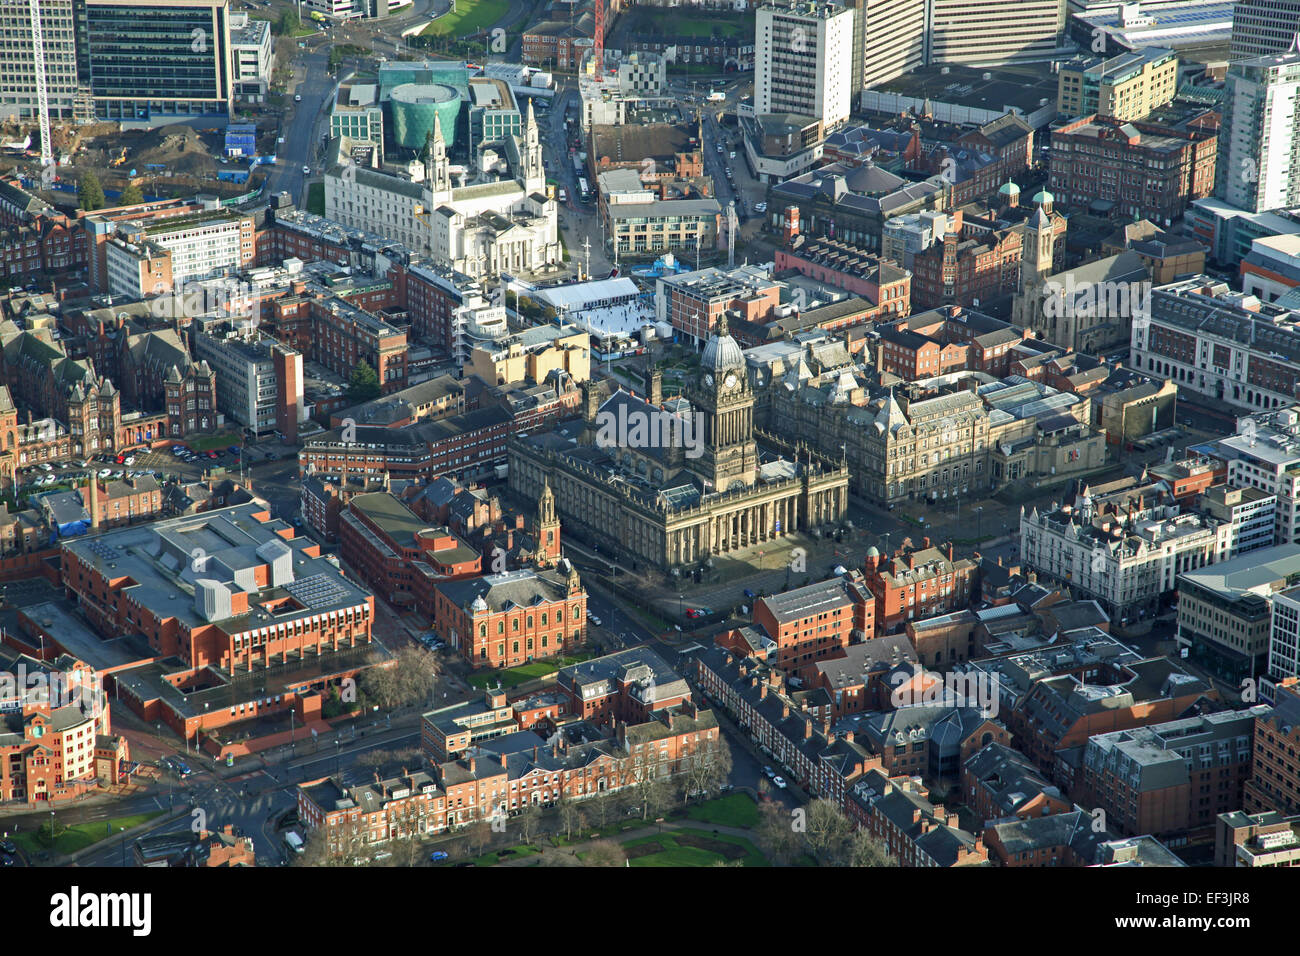 a wintery view of Leeds city centre with the Town Hall and Civic Hall prominent - Stock Image